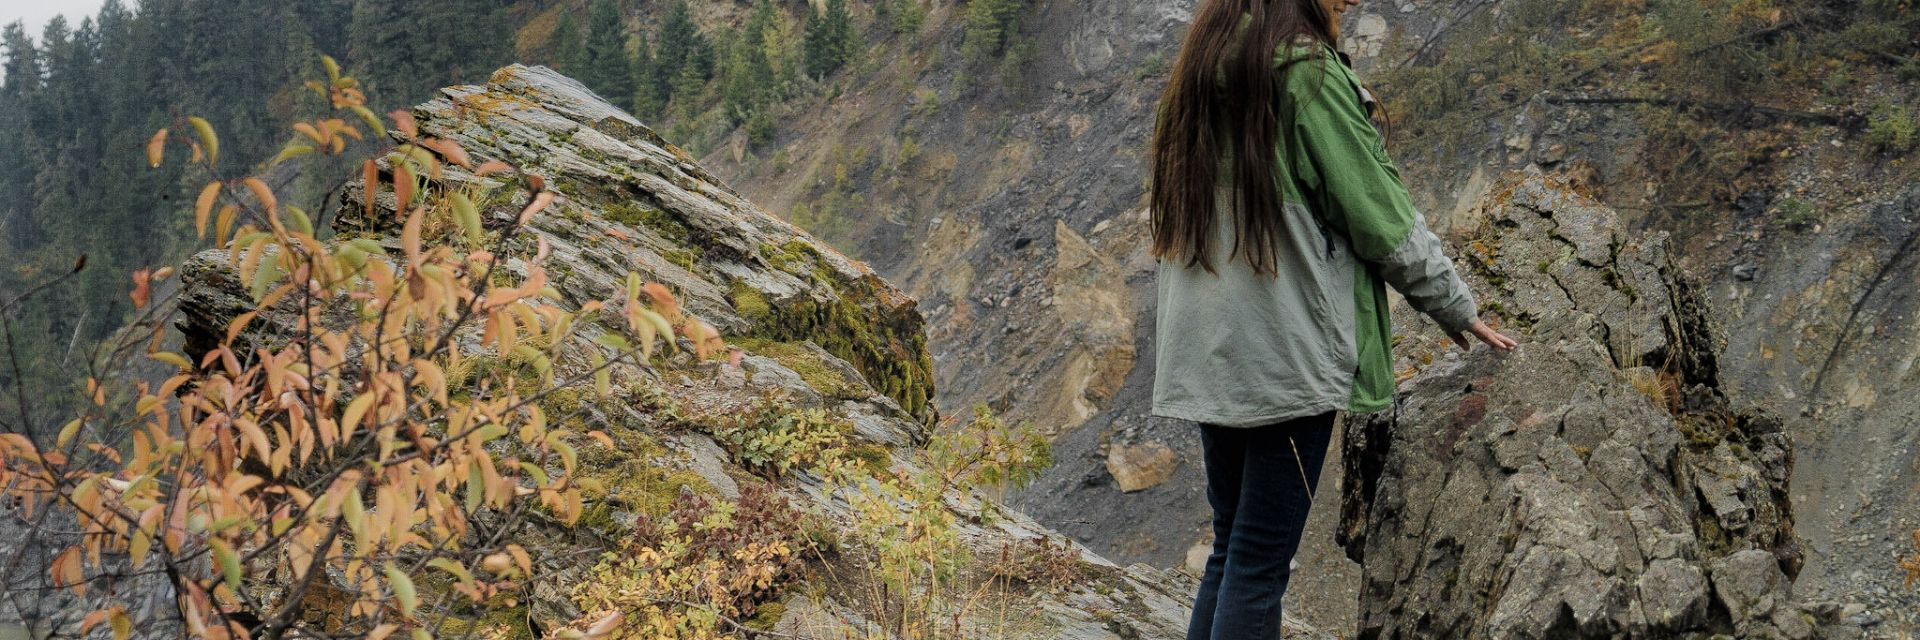 A woman steadies herself while standing at the edge of a cliff